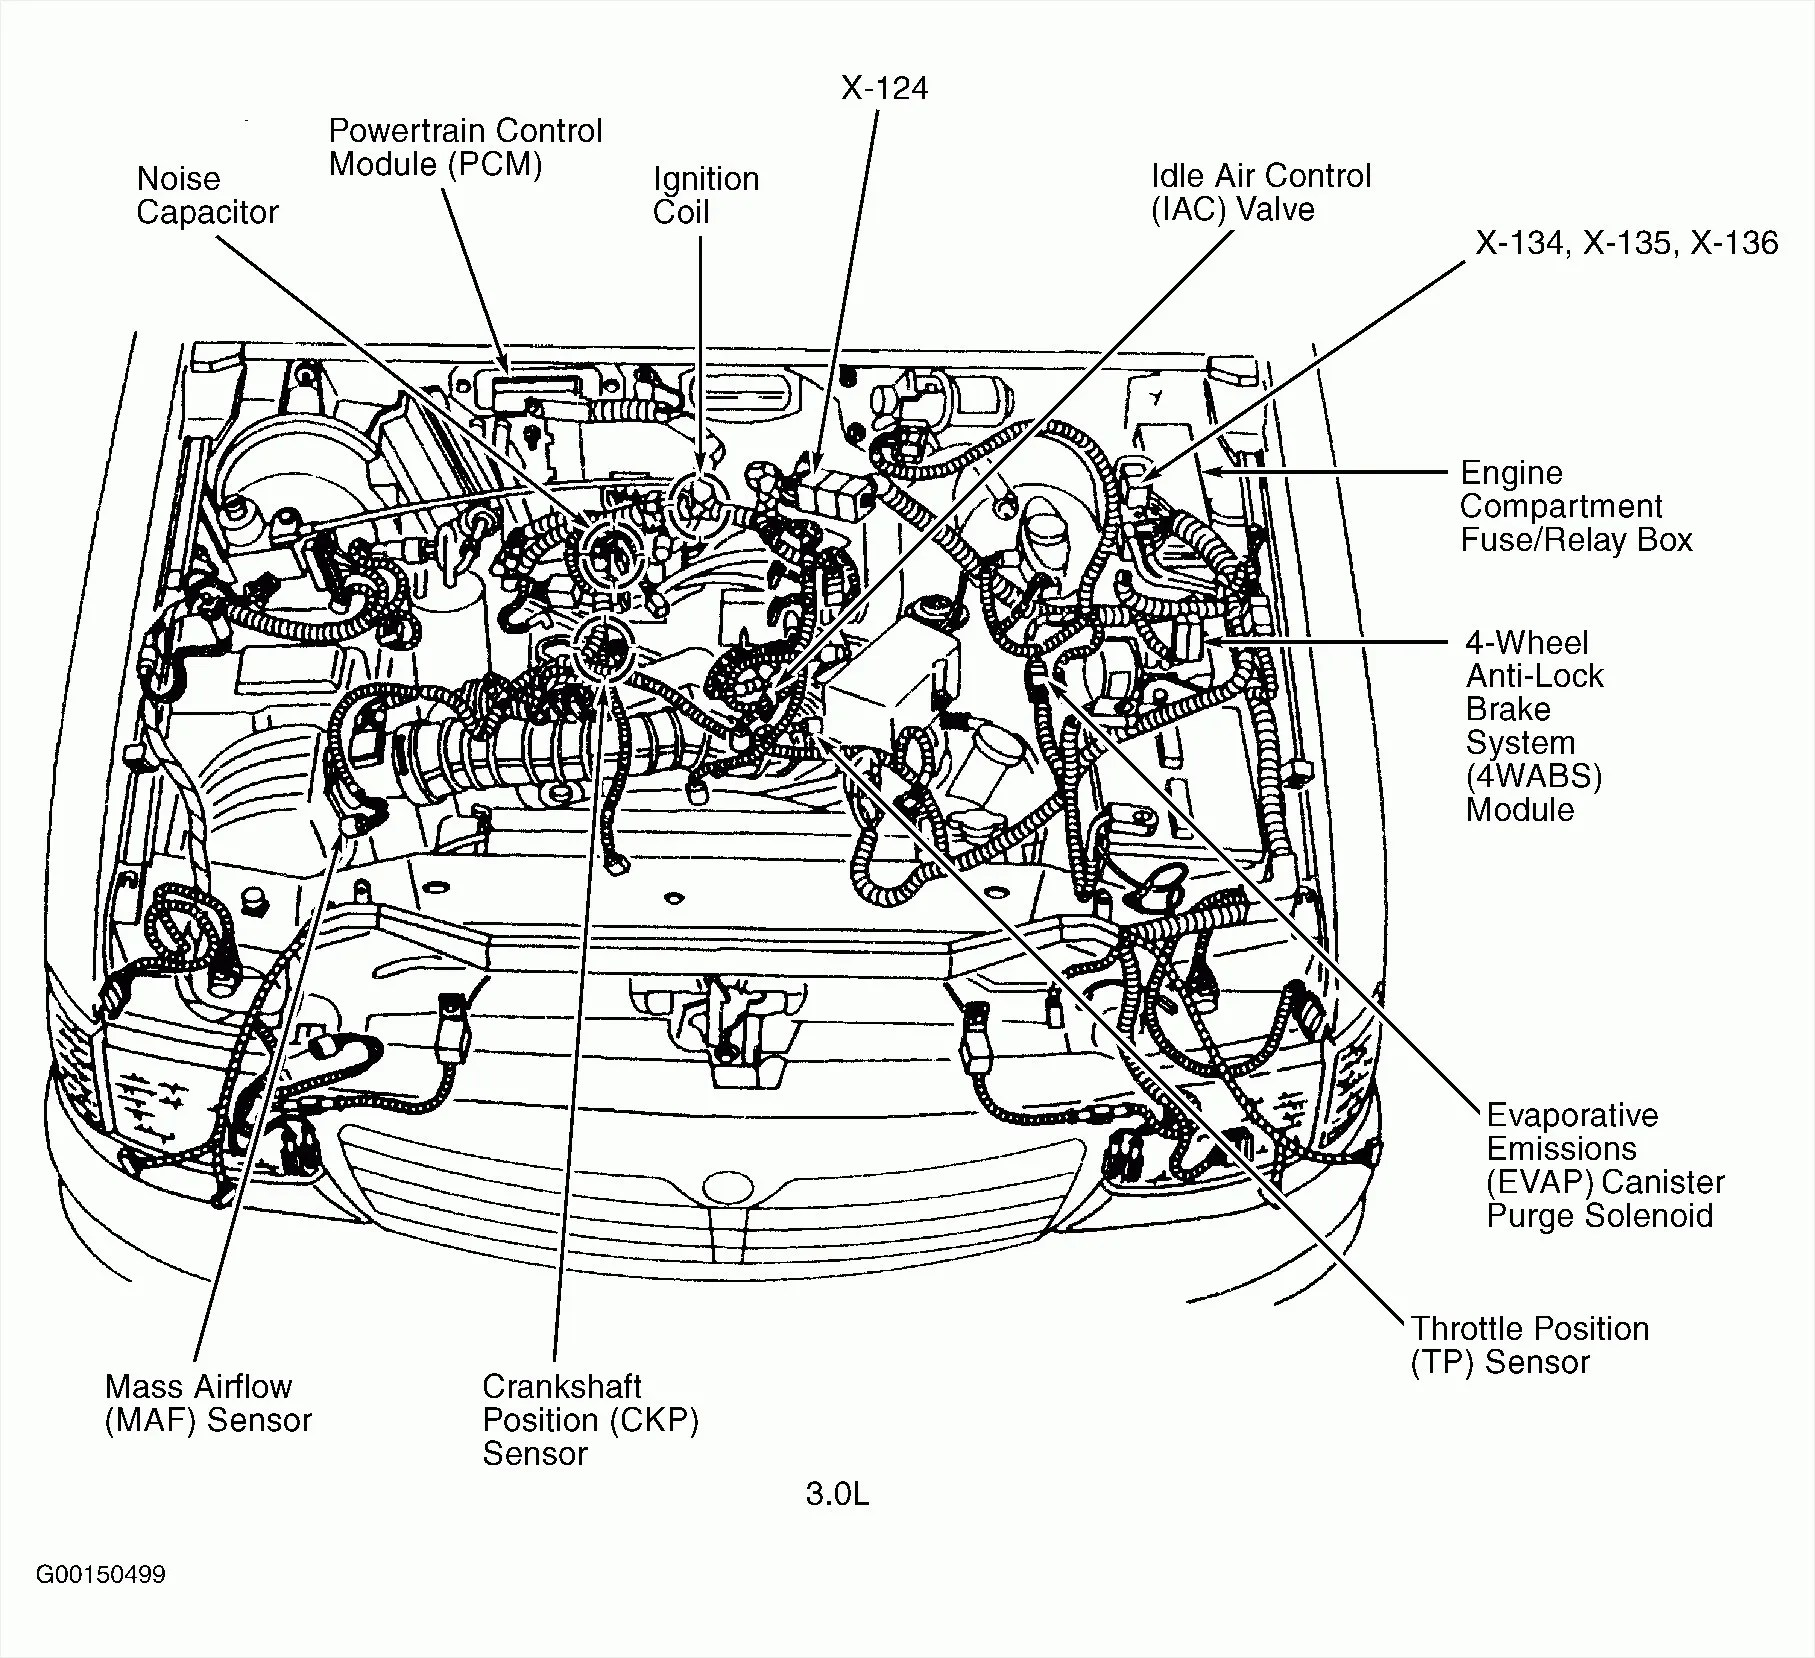 hight resolution of 2 4l engine diagram wiring diagram split 2006 pt cruiser 2 4l engine diagram